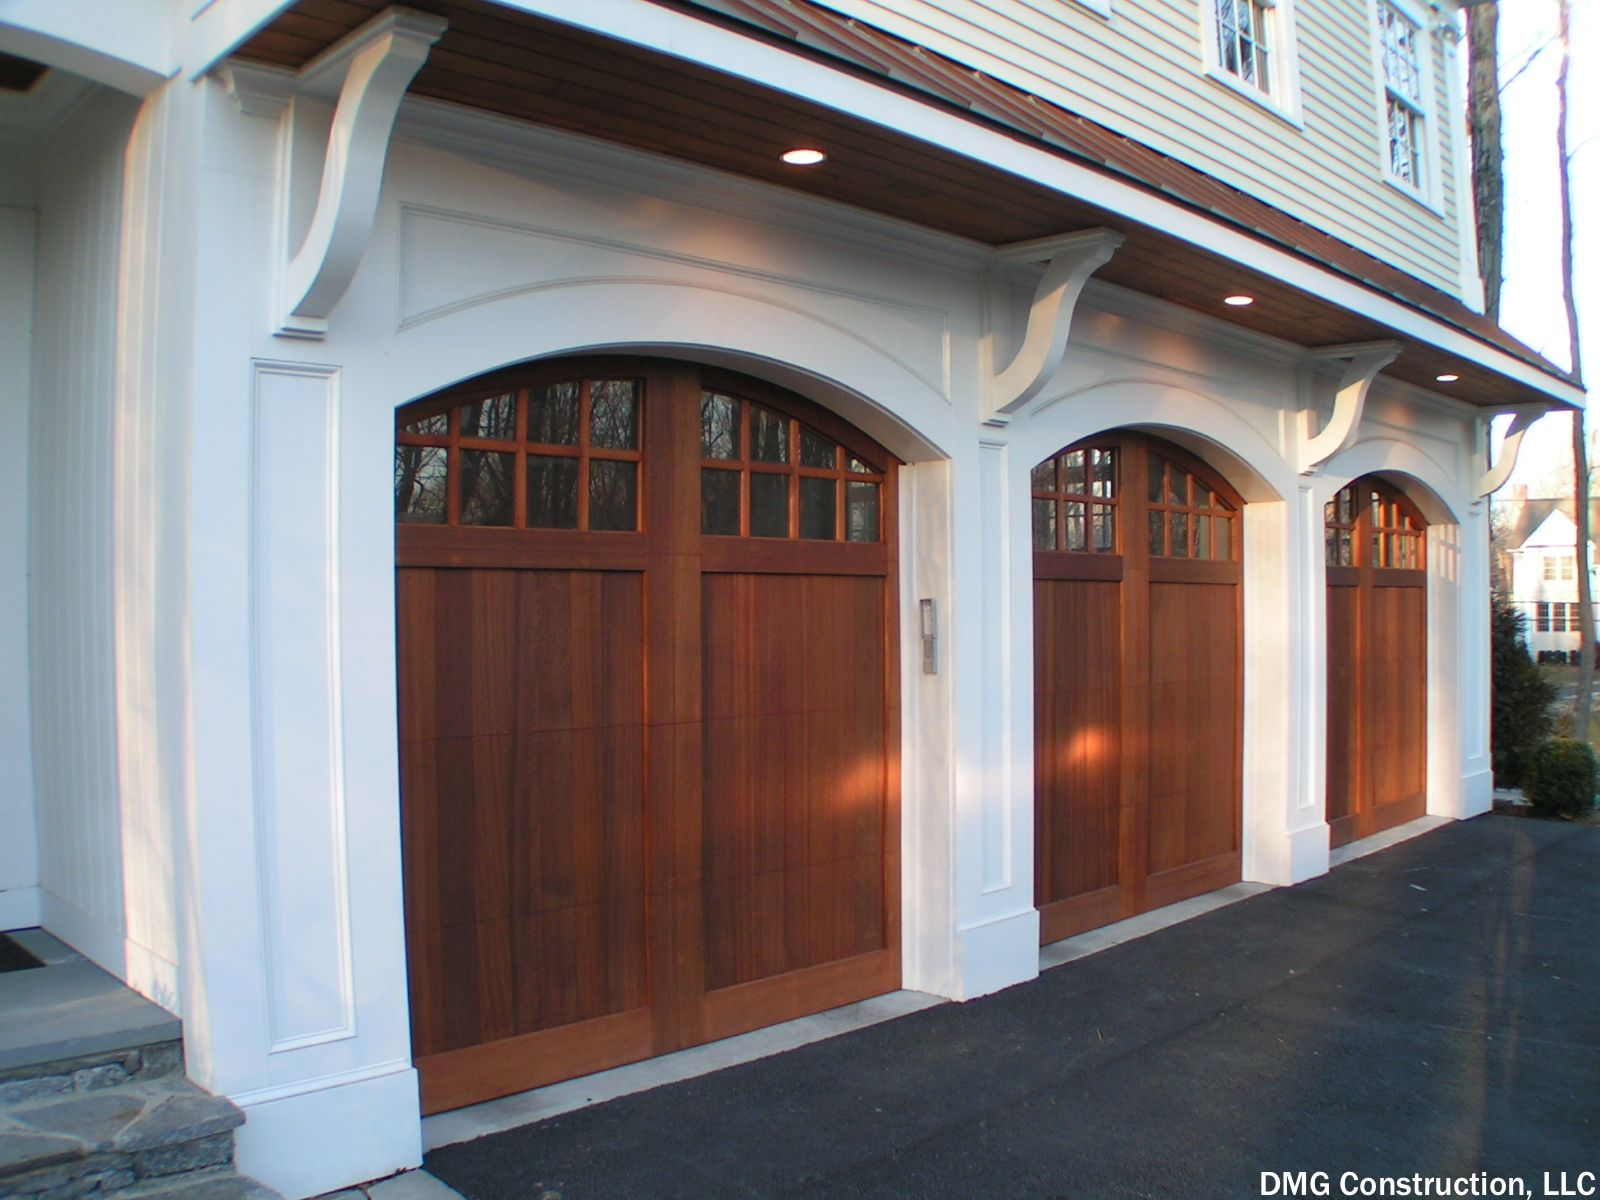 Garage Sheds Cost Garage Prices Pole Barn House Plans Shed Cost